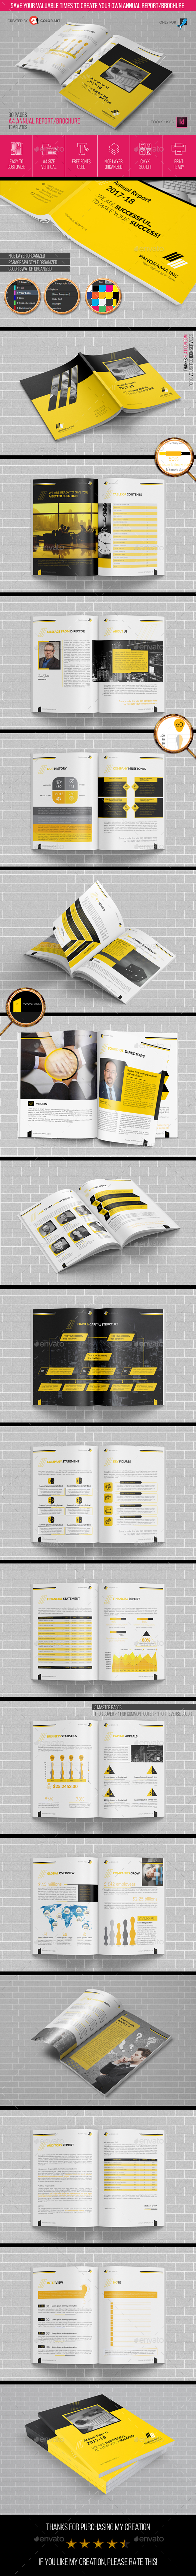 Annual Report Brochure Template 2018 - Brochures Print Templates